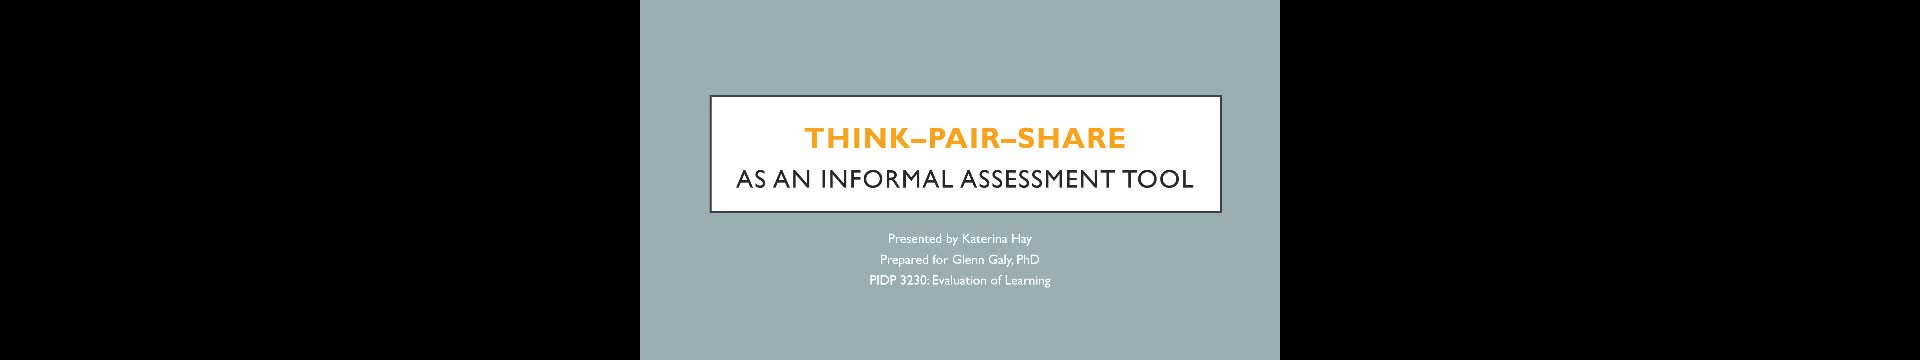 Think-Pair-Share as an Assessment Tool